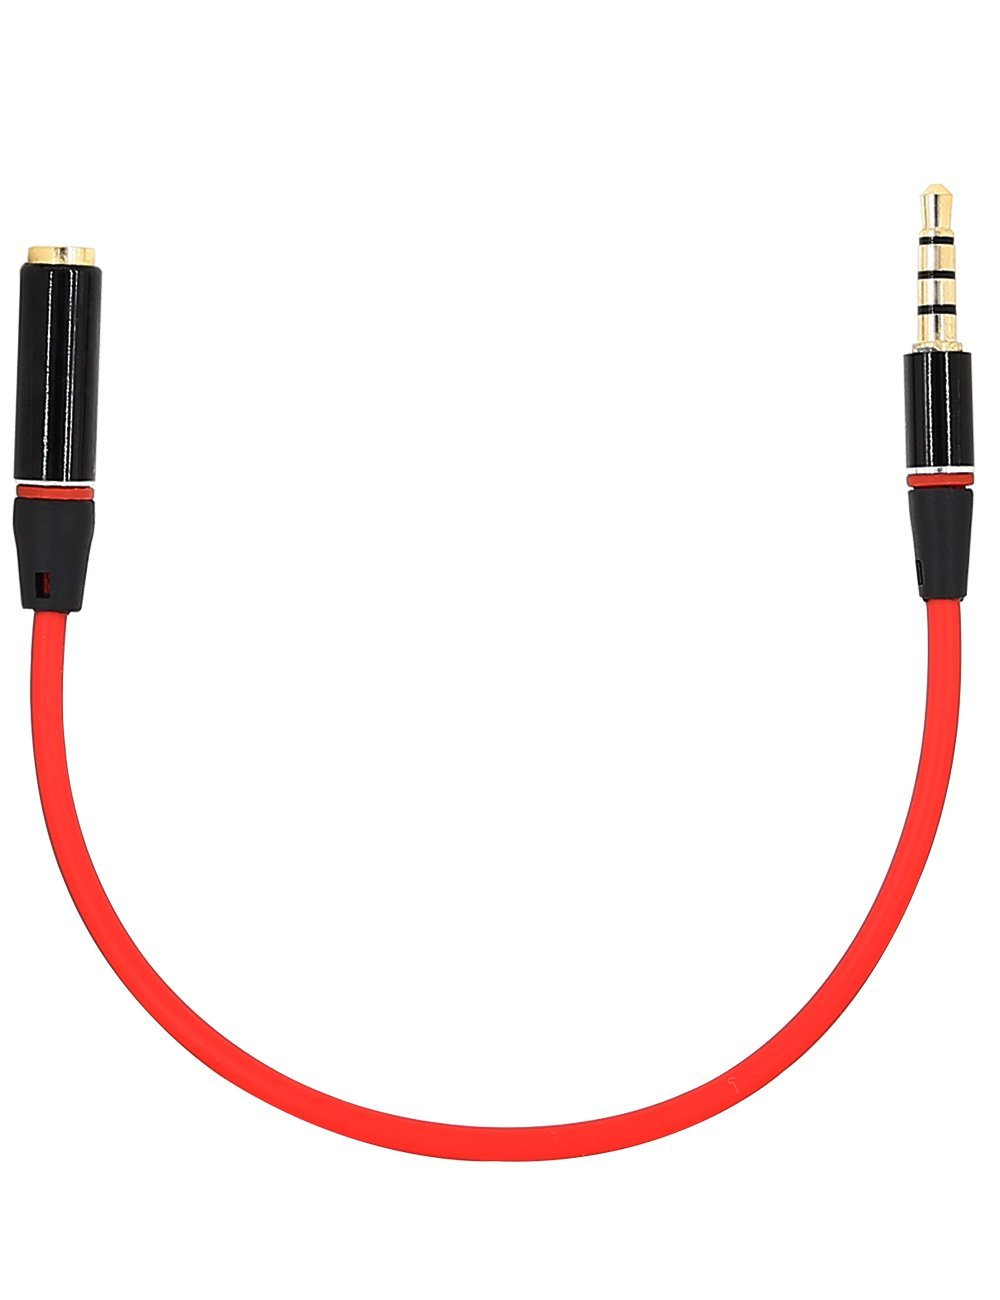 3.5mm Male to Female Audio Extension Cable, iMangoo Auxiliary Stereo Aux Cable (20cm/0.65ft) Headphone Earphone Audio Cable for Cell Phone iPhone 7 Plus 6s Galaxy Note 7 S7 Edge Smartphone Black/Red